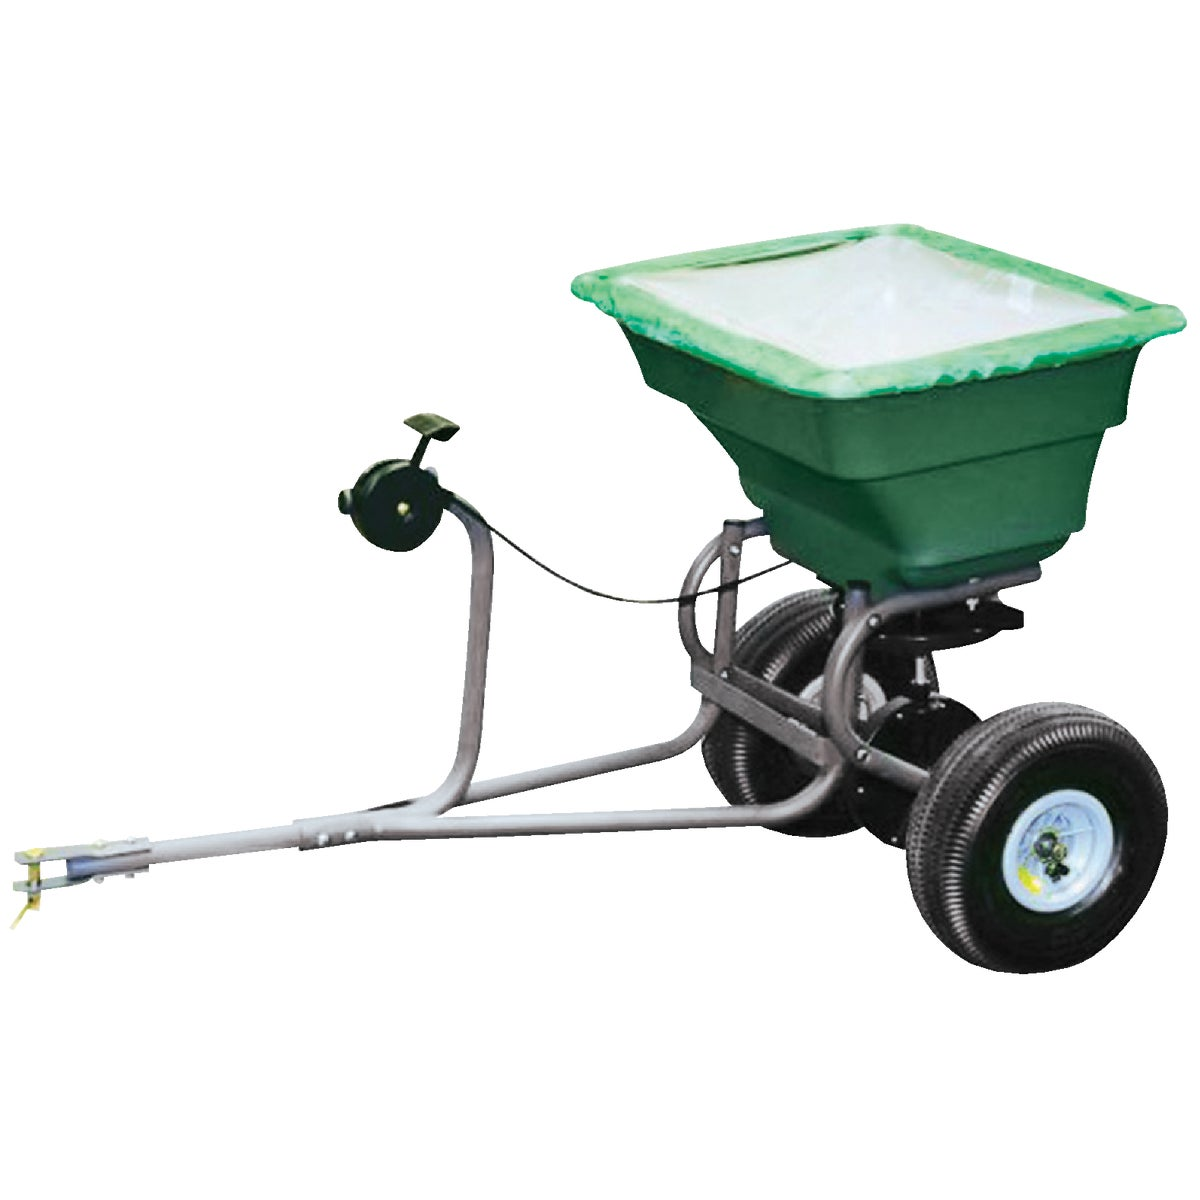 75LB TOW SPREADER - TBS4000PRCGY by Precision Prod Inc